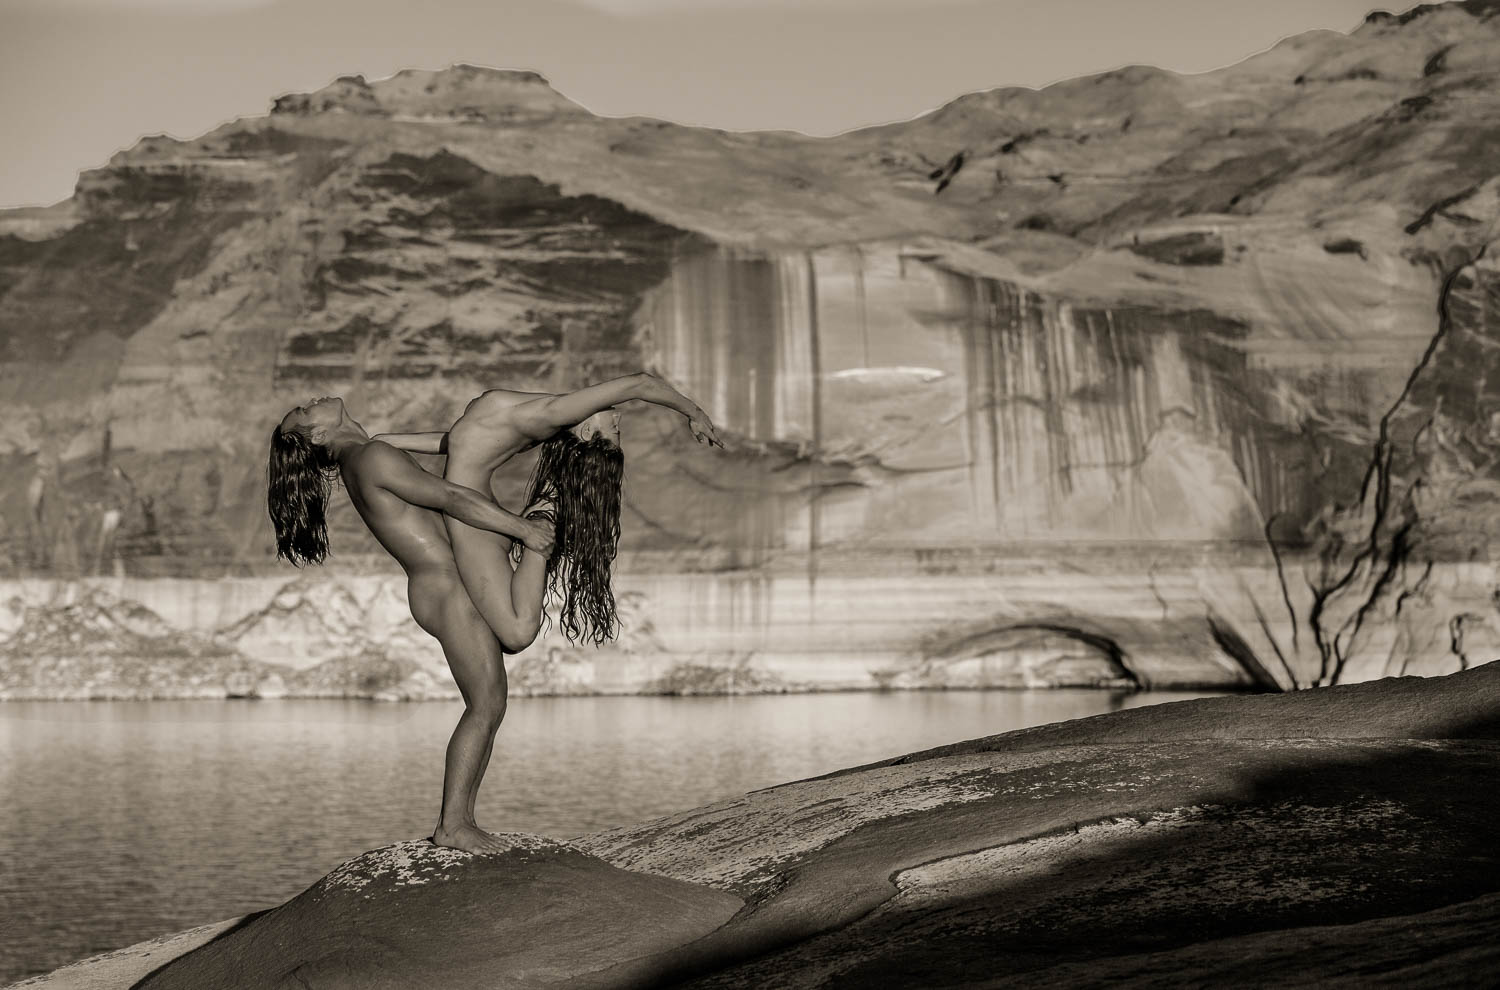 Regret, that Lake powell naked were visited